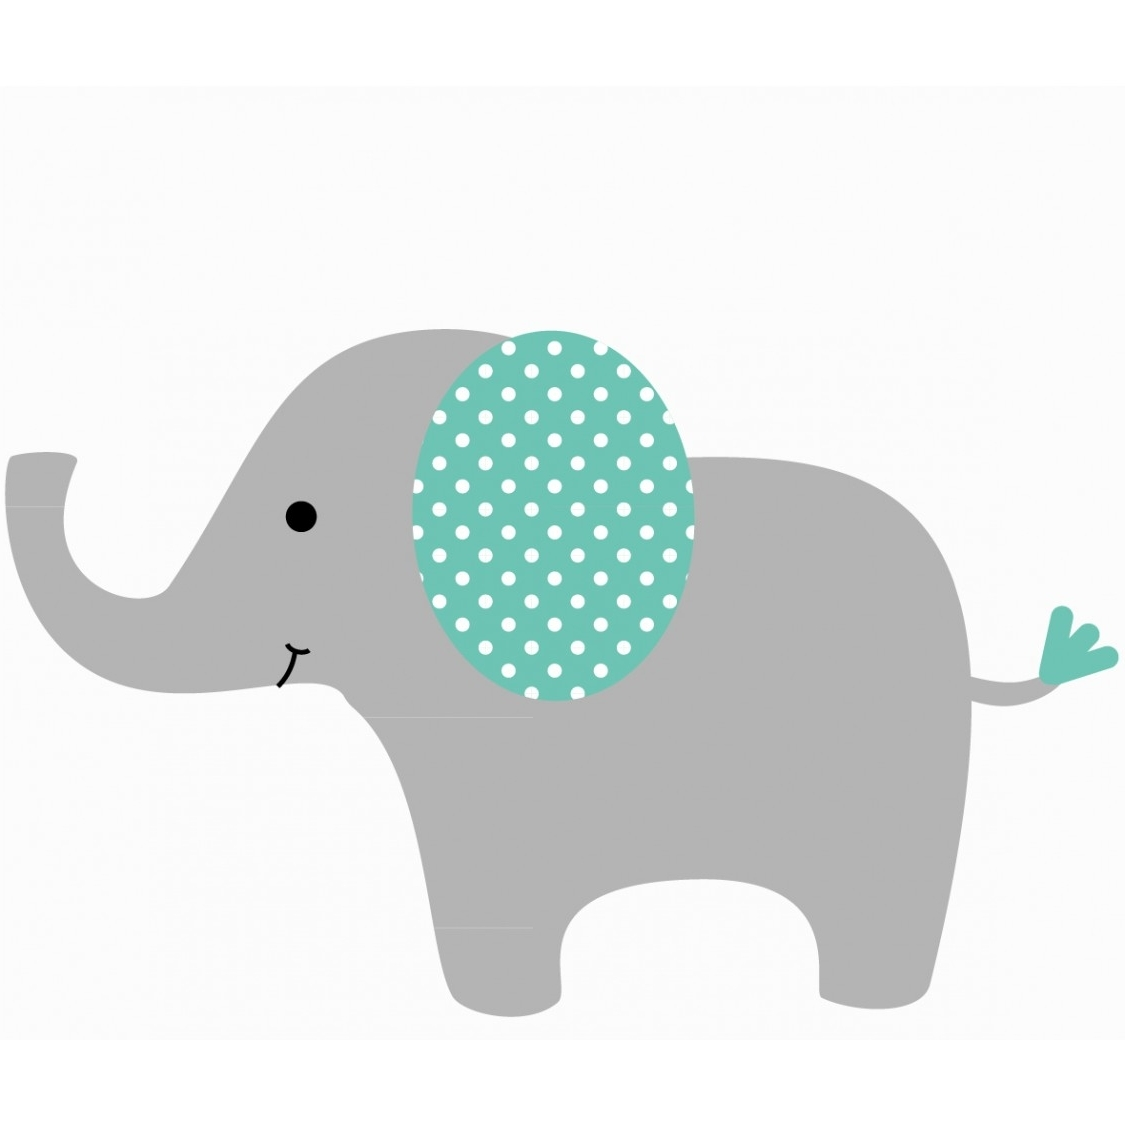 Most Current Customizable Elephant Wall Decal For Nursery Or Baby Room With Elephant Wall Art For Nursery (View 11 of 15)